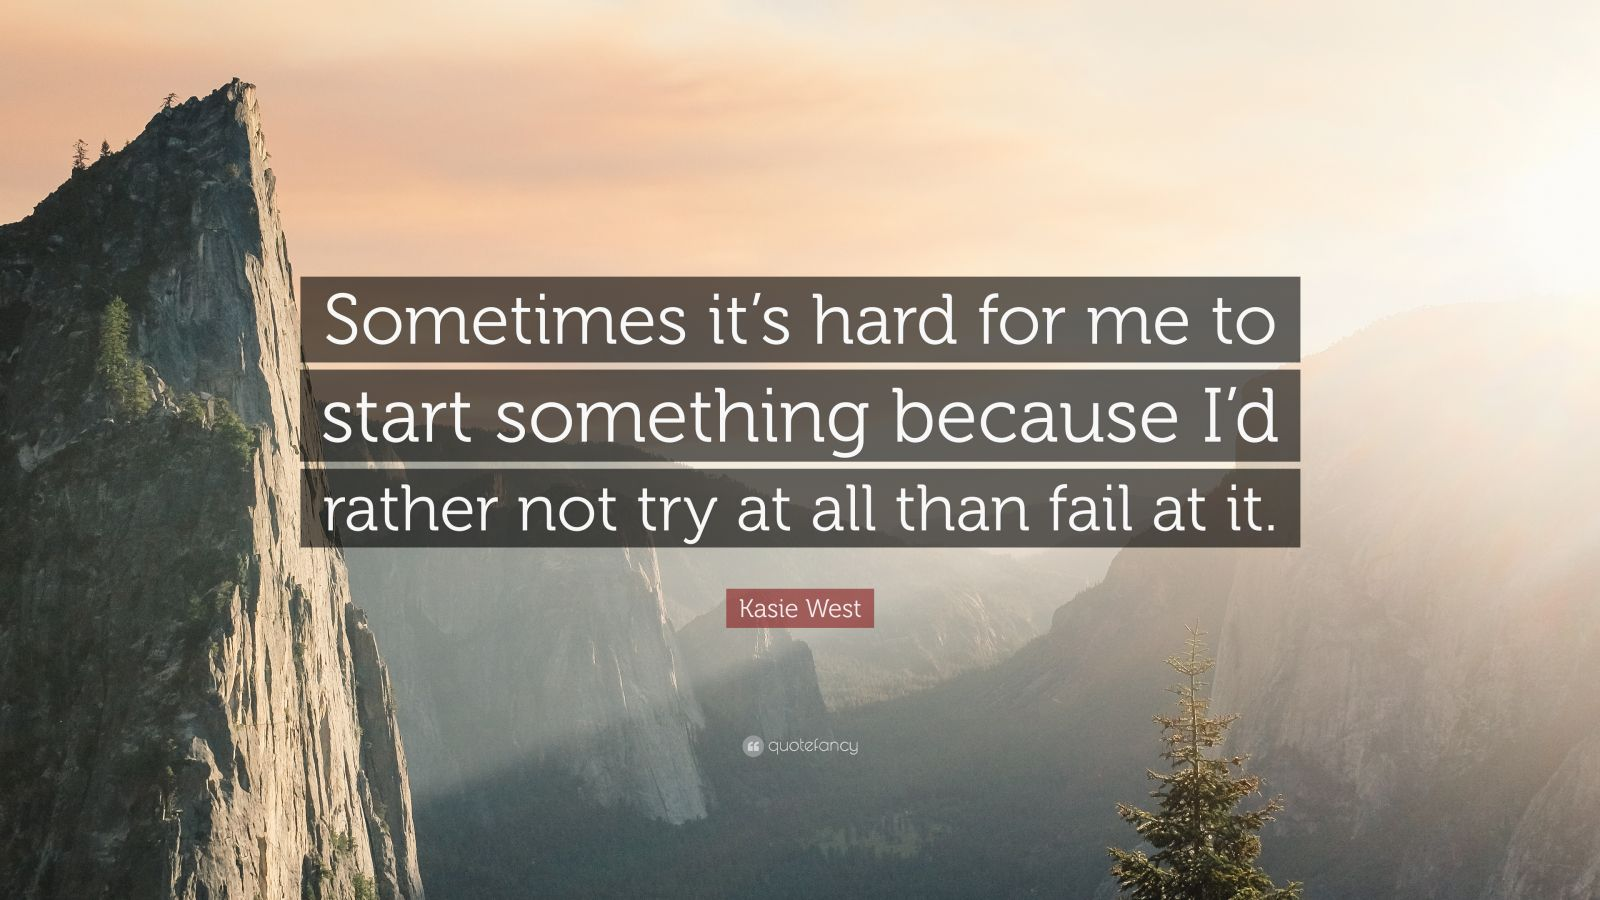 Fail Quotes Wallpaper Kasie West Quotes 14 Wallpapers Quotefancy